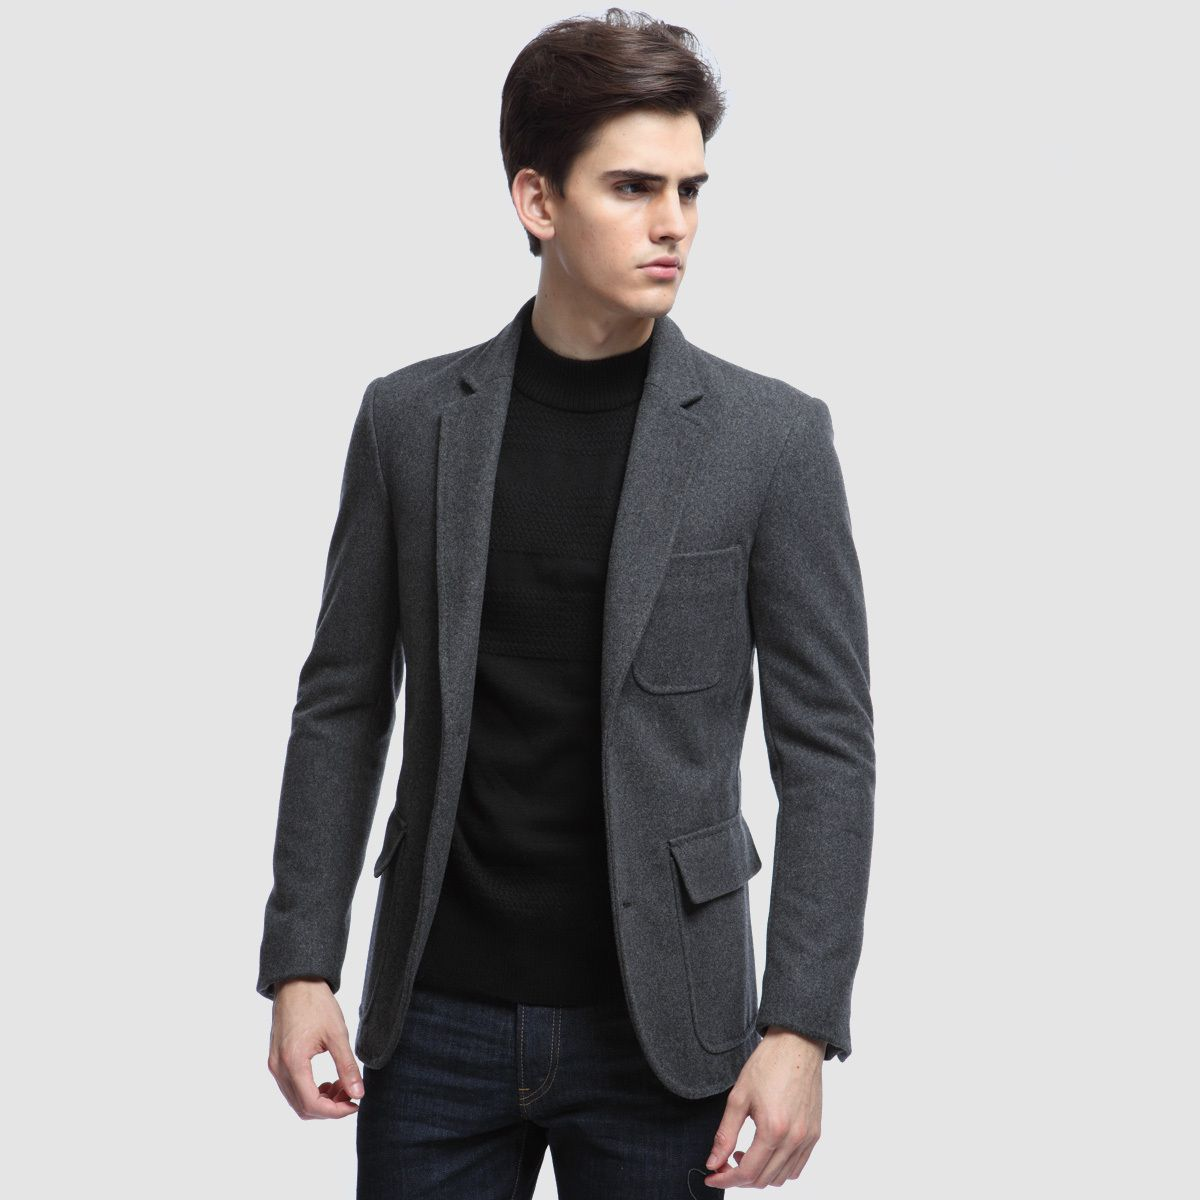 Max Toney spring clothing men's jackets men's wool suit vintage ...